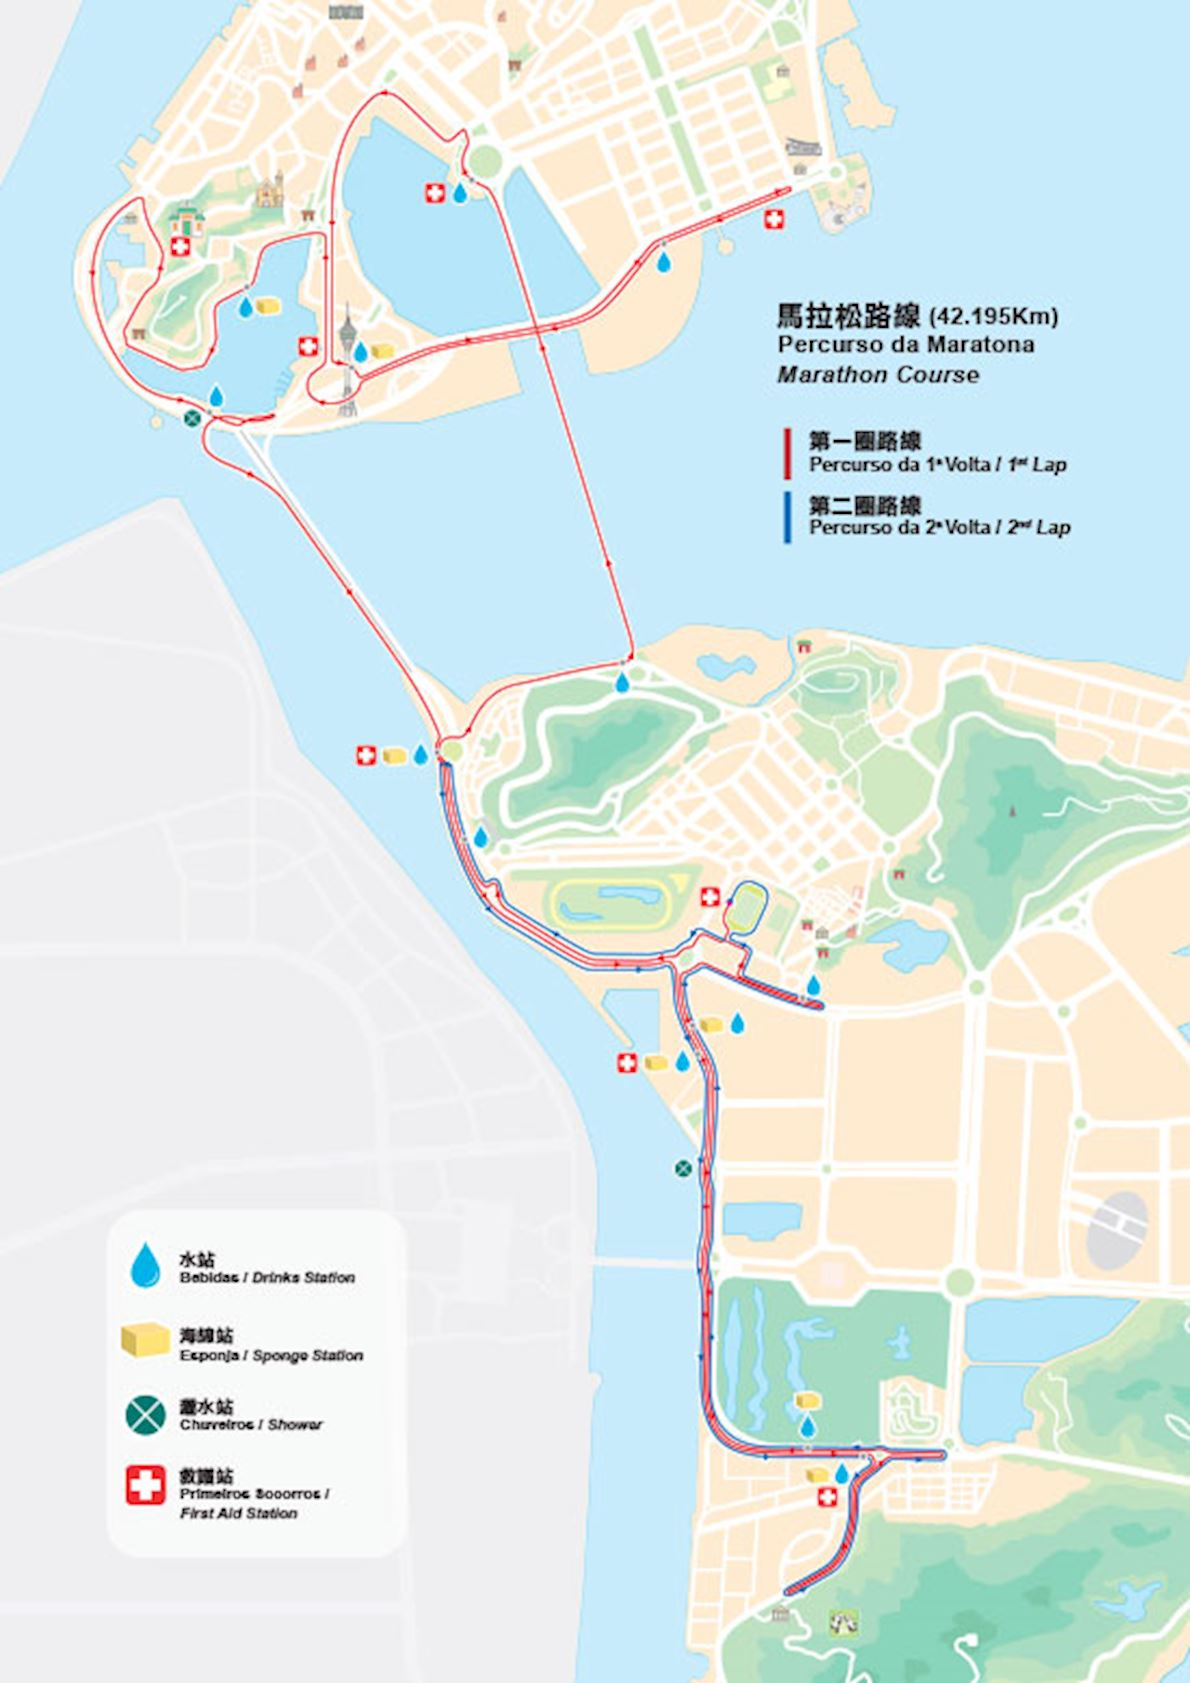 Macau Galaxy Entertainment International Marathon Route Map